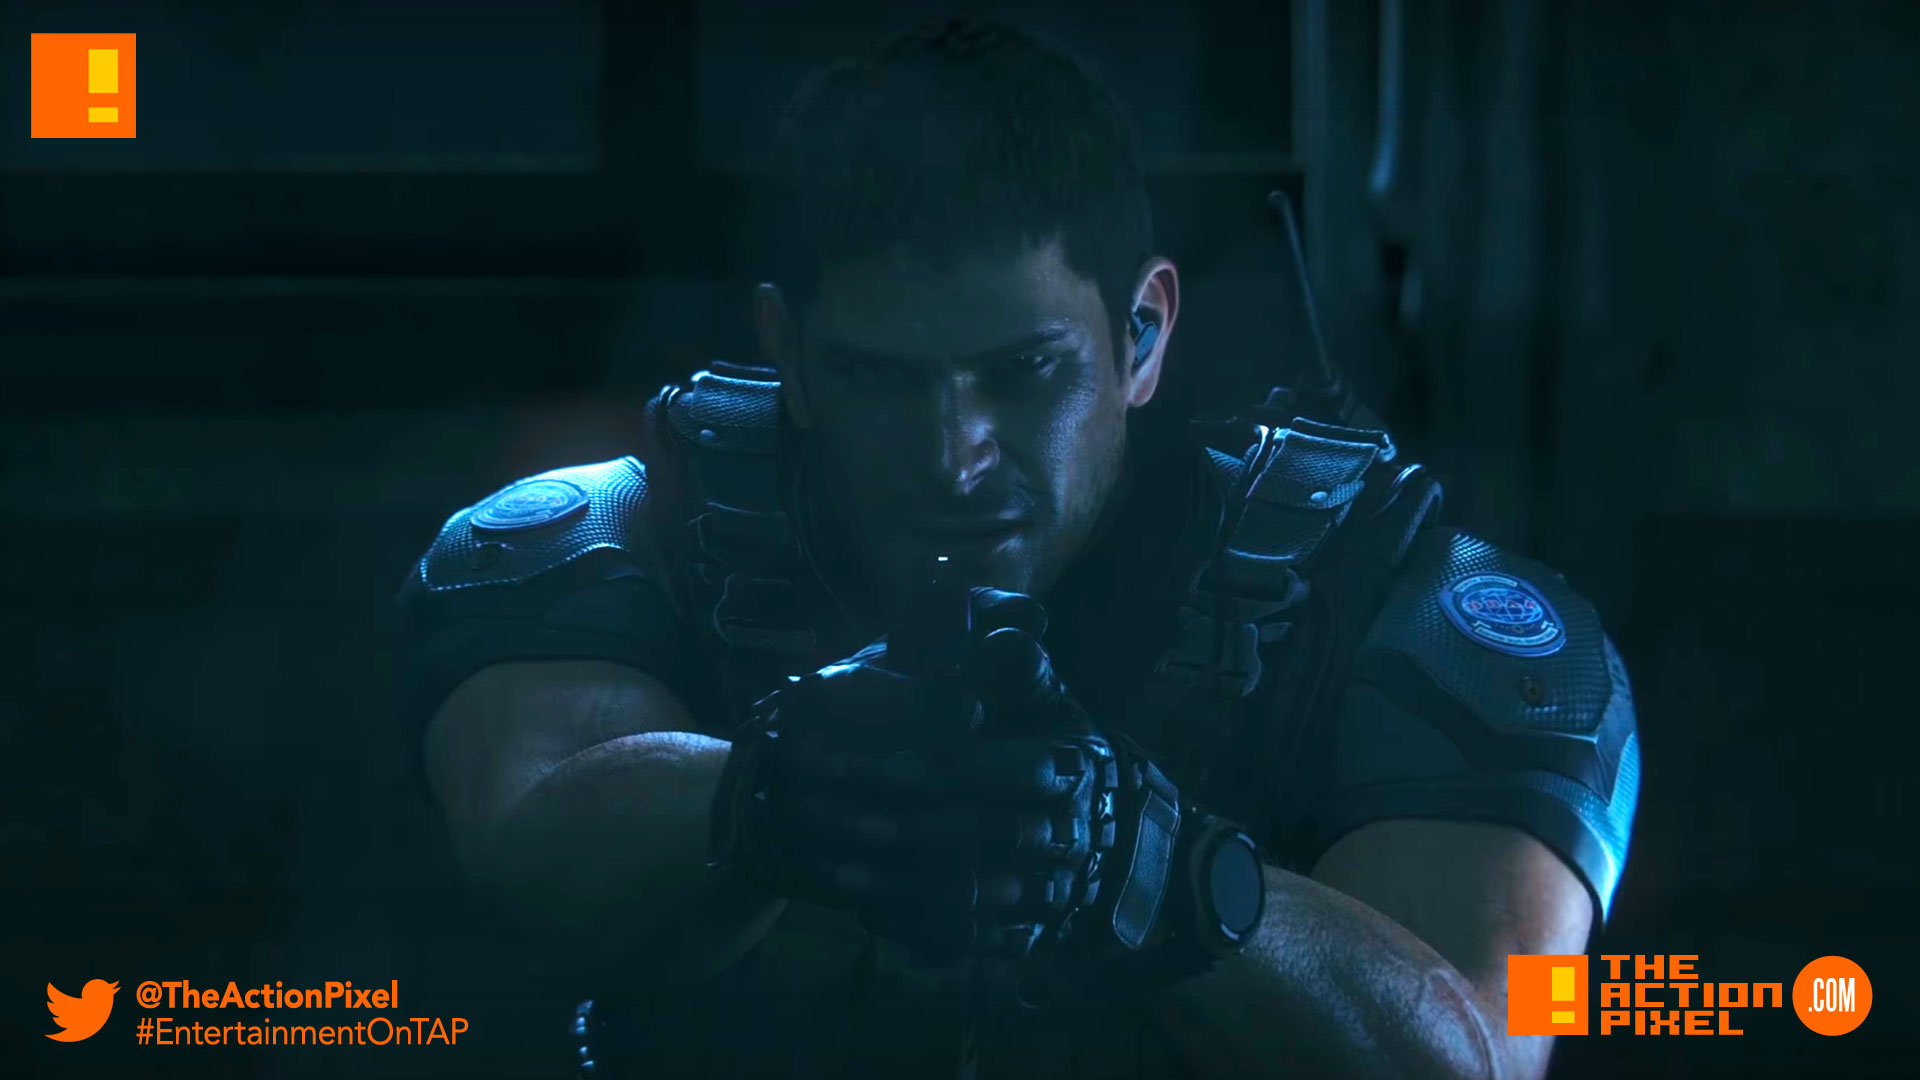 resident evil: vendetta, the action pixel, resident evil, capcom, trailer, entertainment on tap, the action pixel